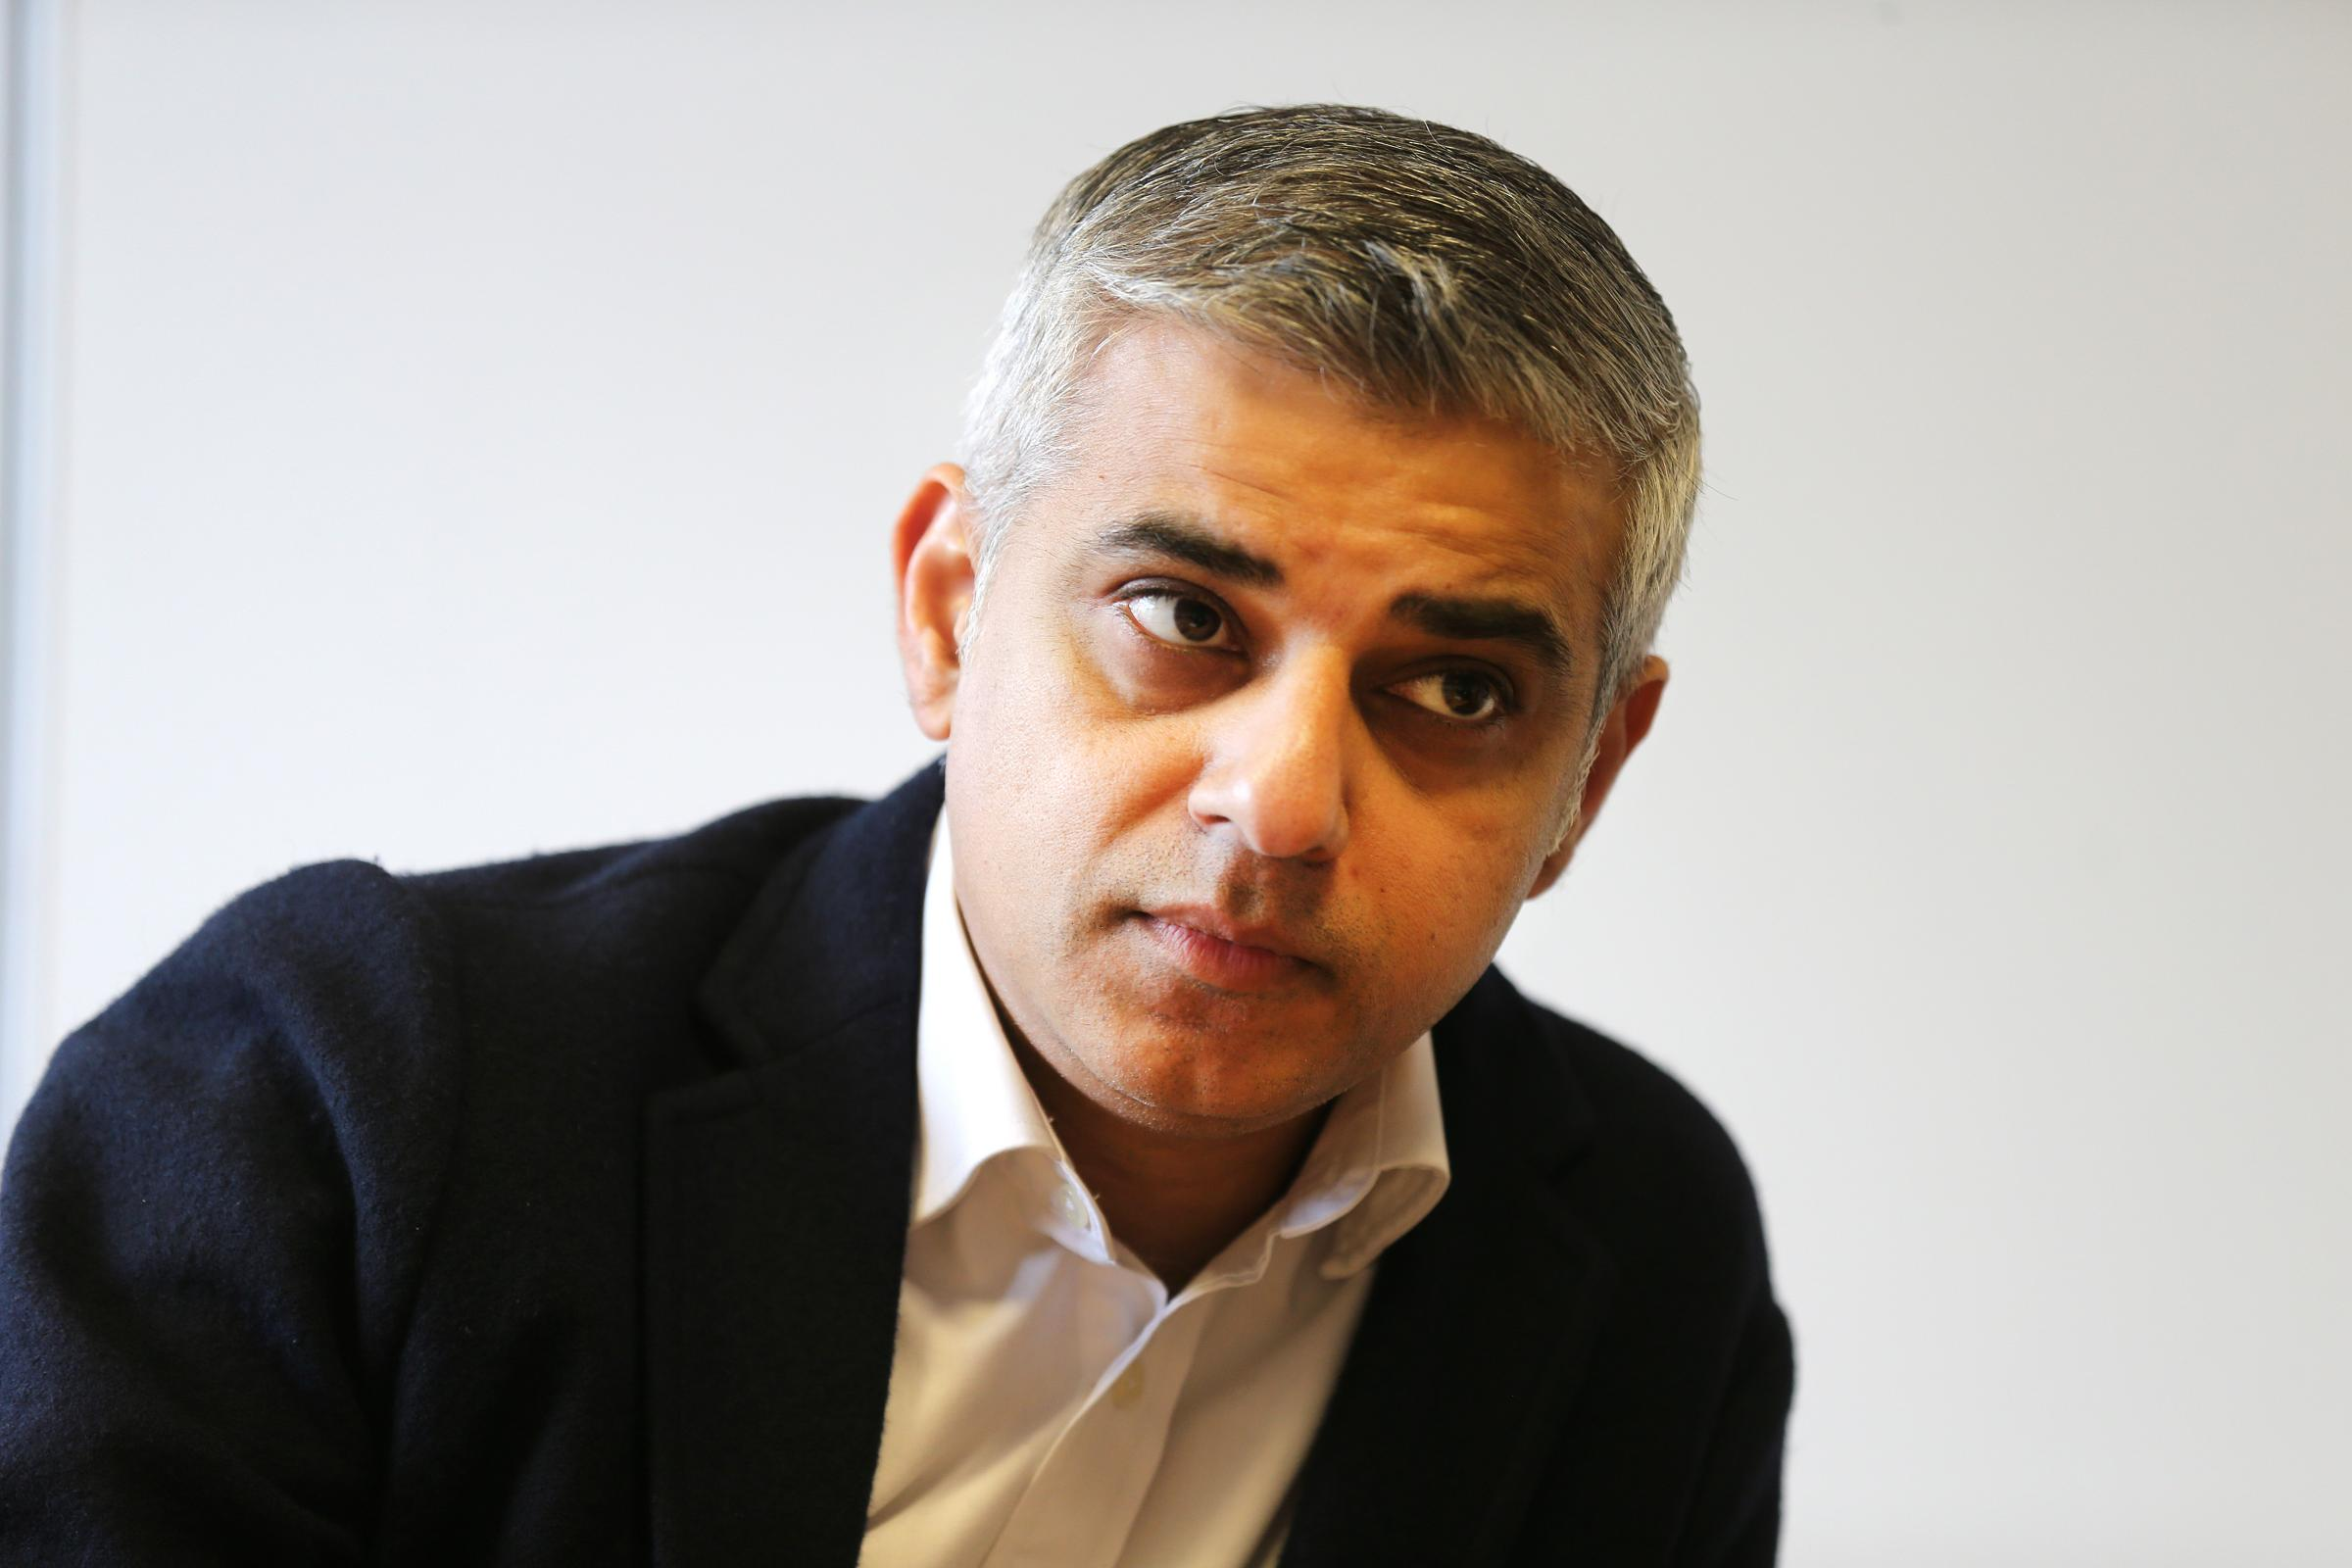 Sadiq Khan calls for control as Waltham Forest rent skyrockets - East London and West Essex Guardian Series